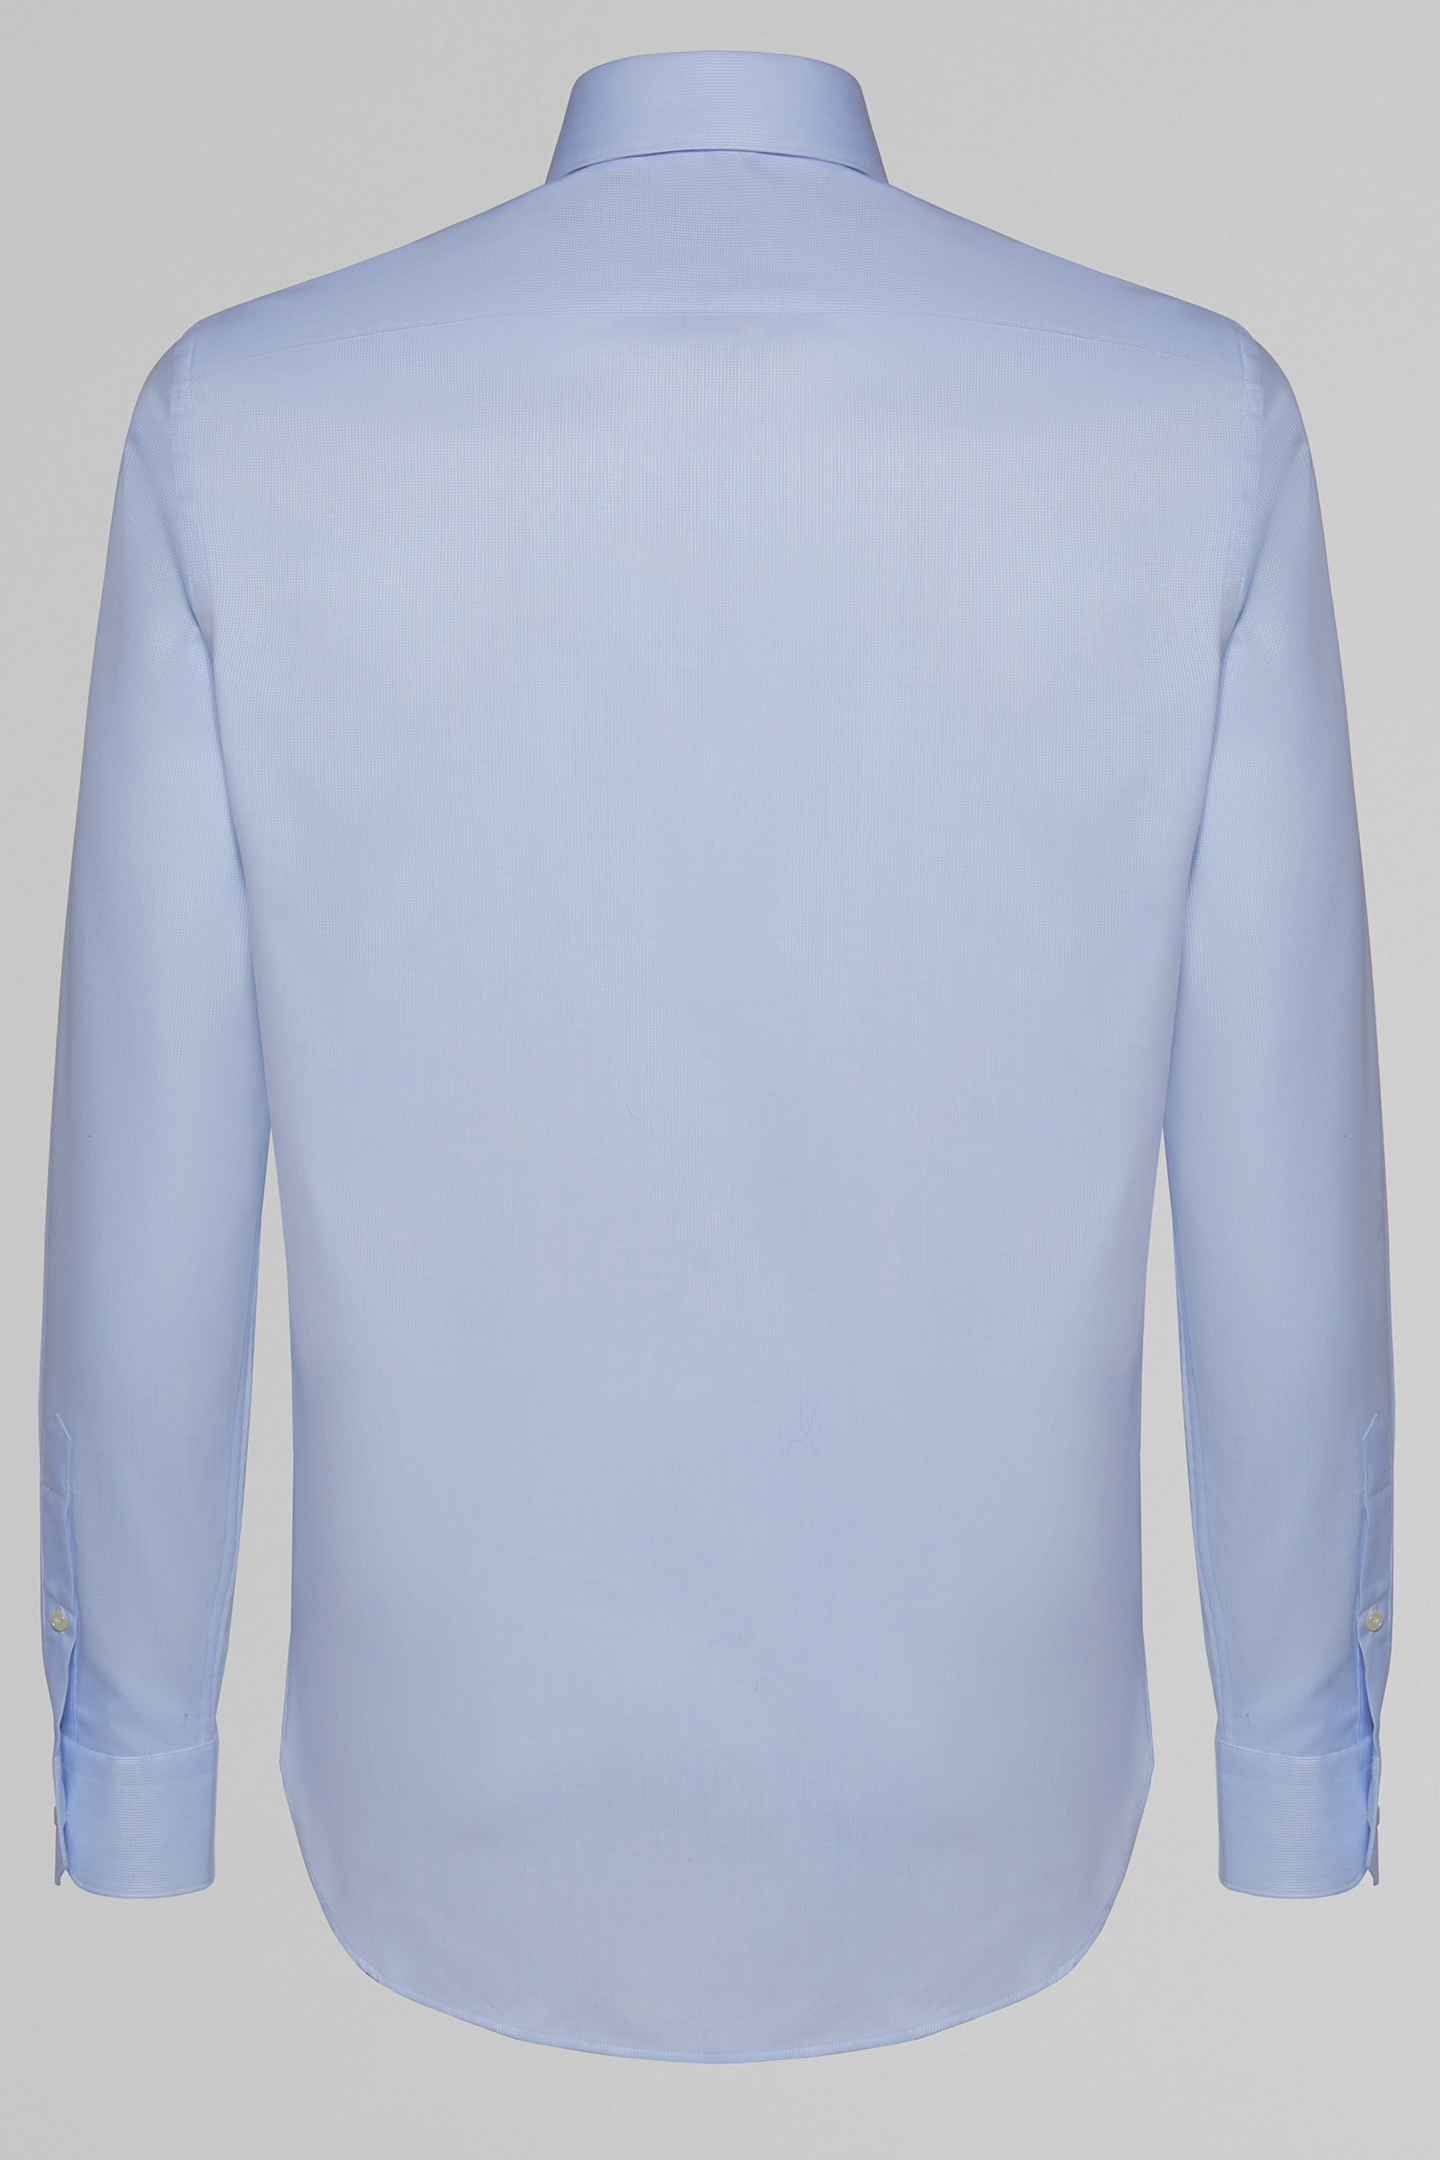 ... SLIM FIT BLUE SHIRT WITH NAPLES COLLAR, LIGHT BLUE, small ...